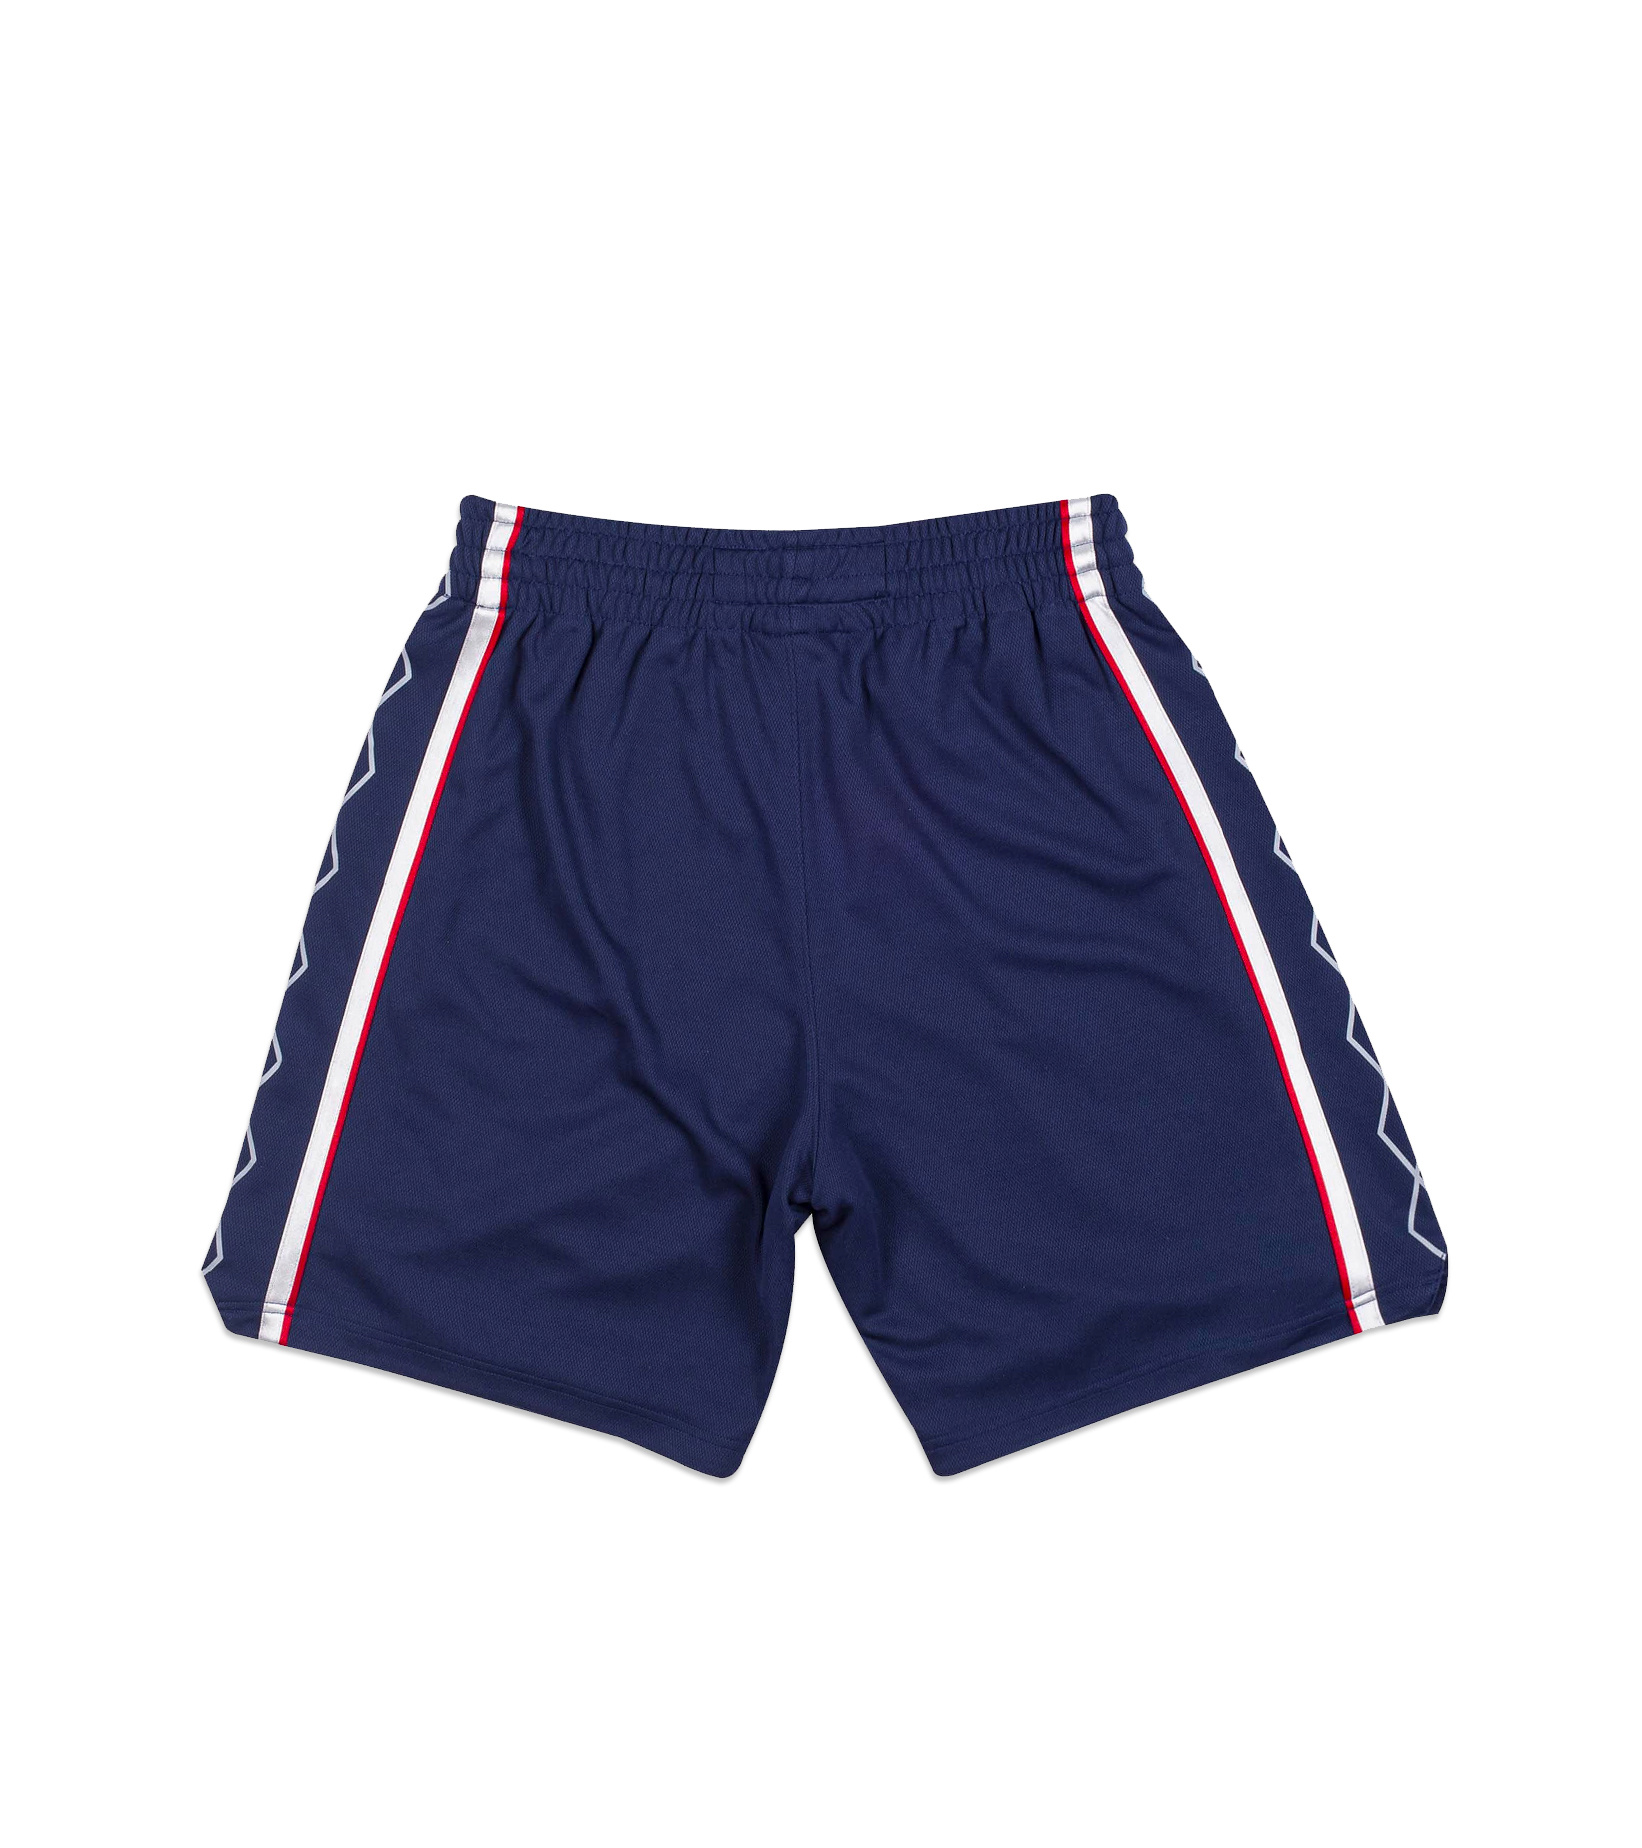 """New Jersey Nets '06-'07 Authentic Road Short """"Astros Blue""""-6"""